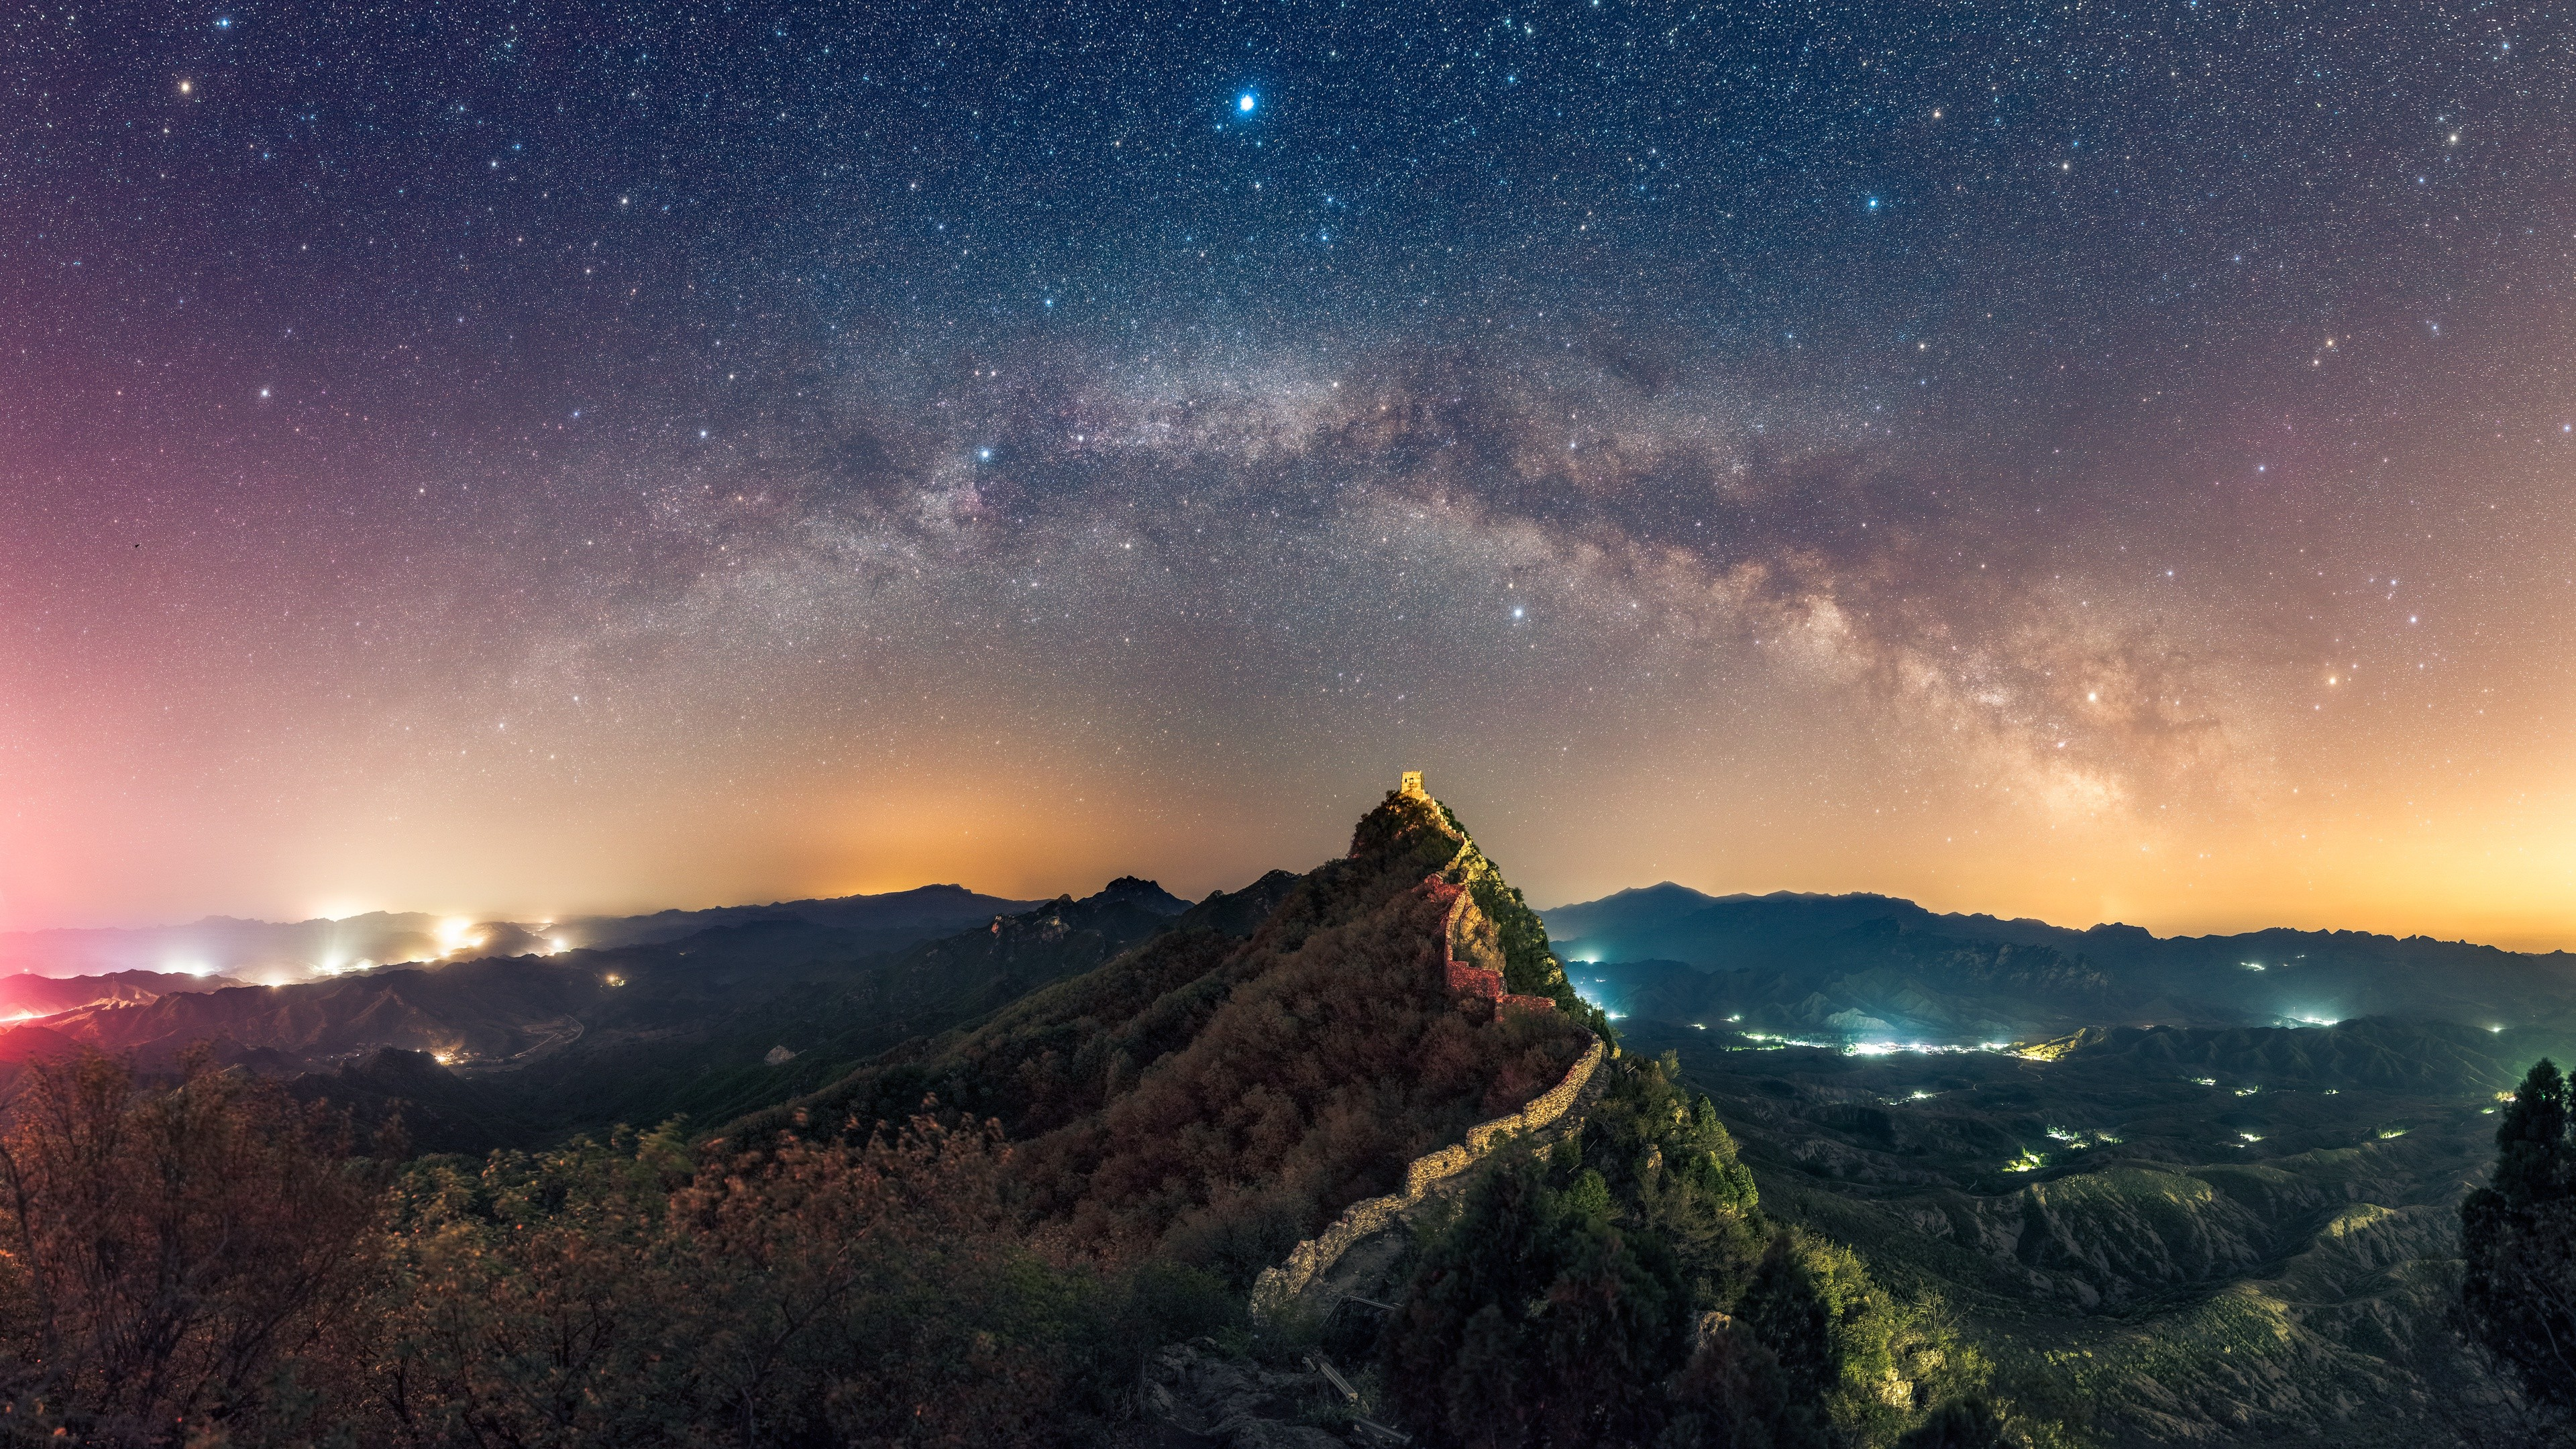 The Great Wall of China Wallpaper 51 images 3840x2160